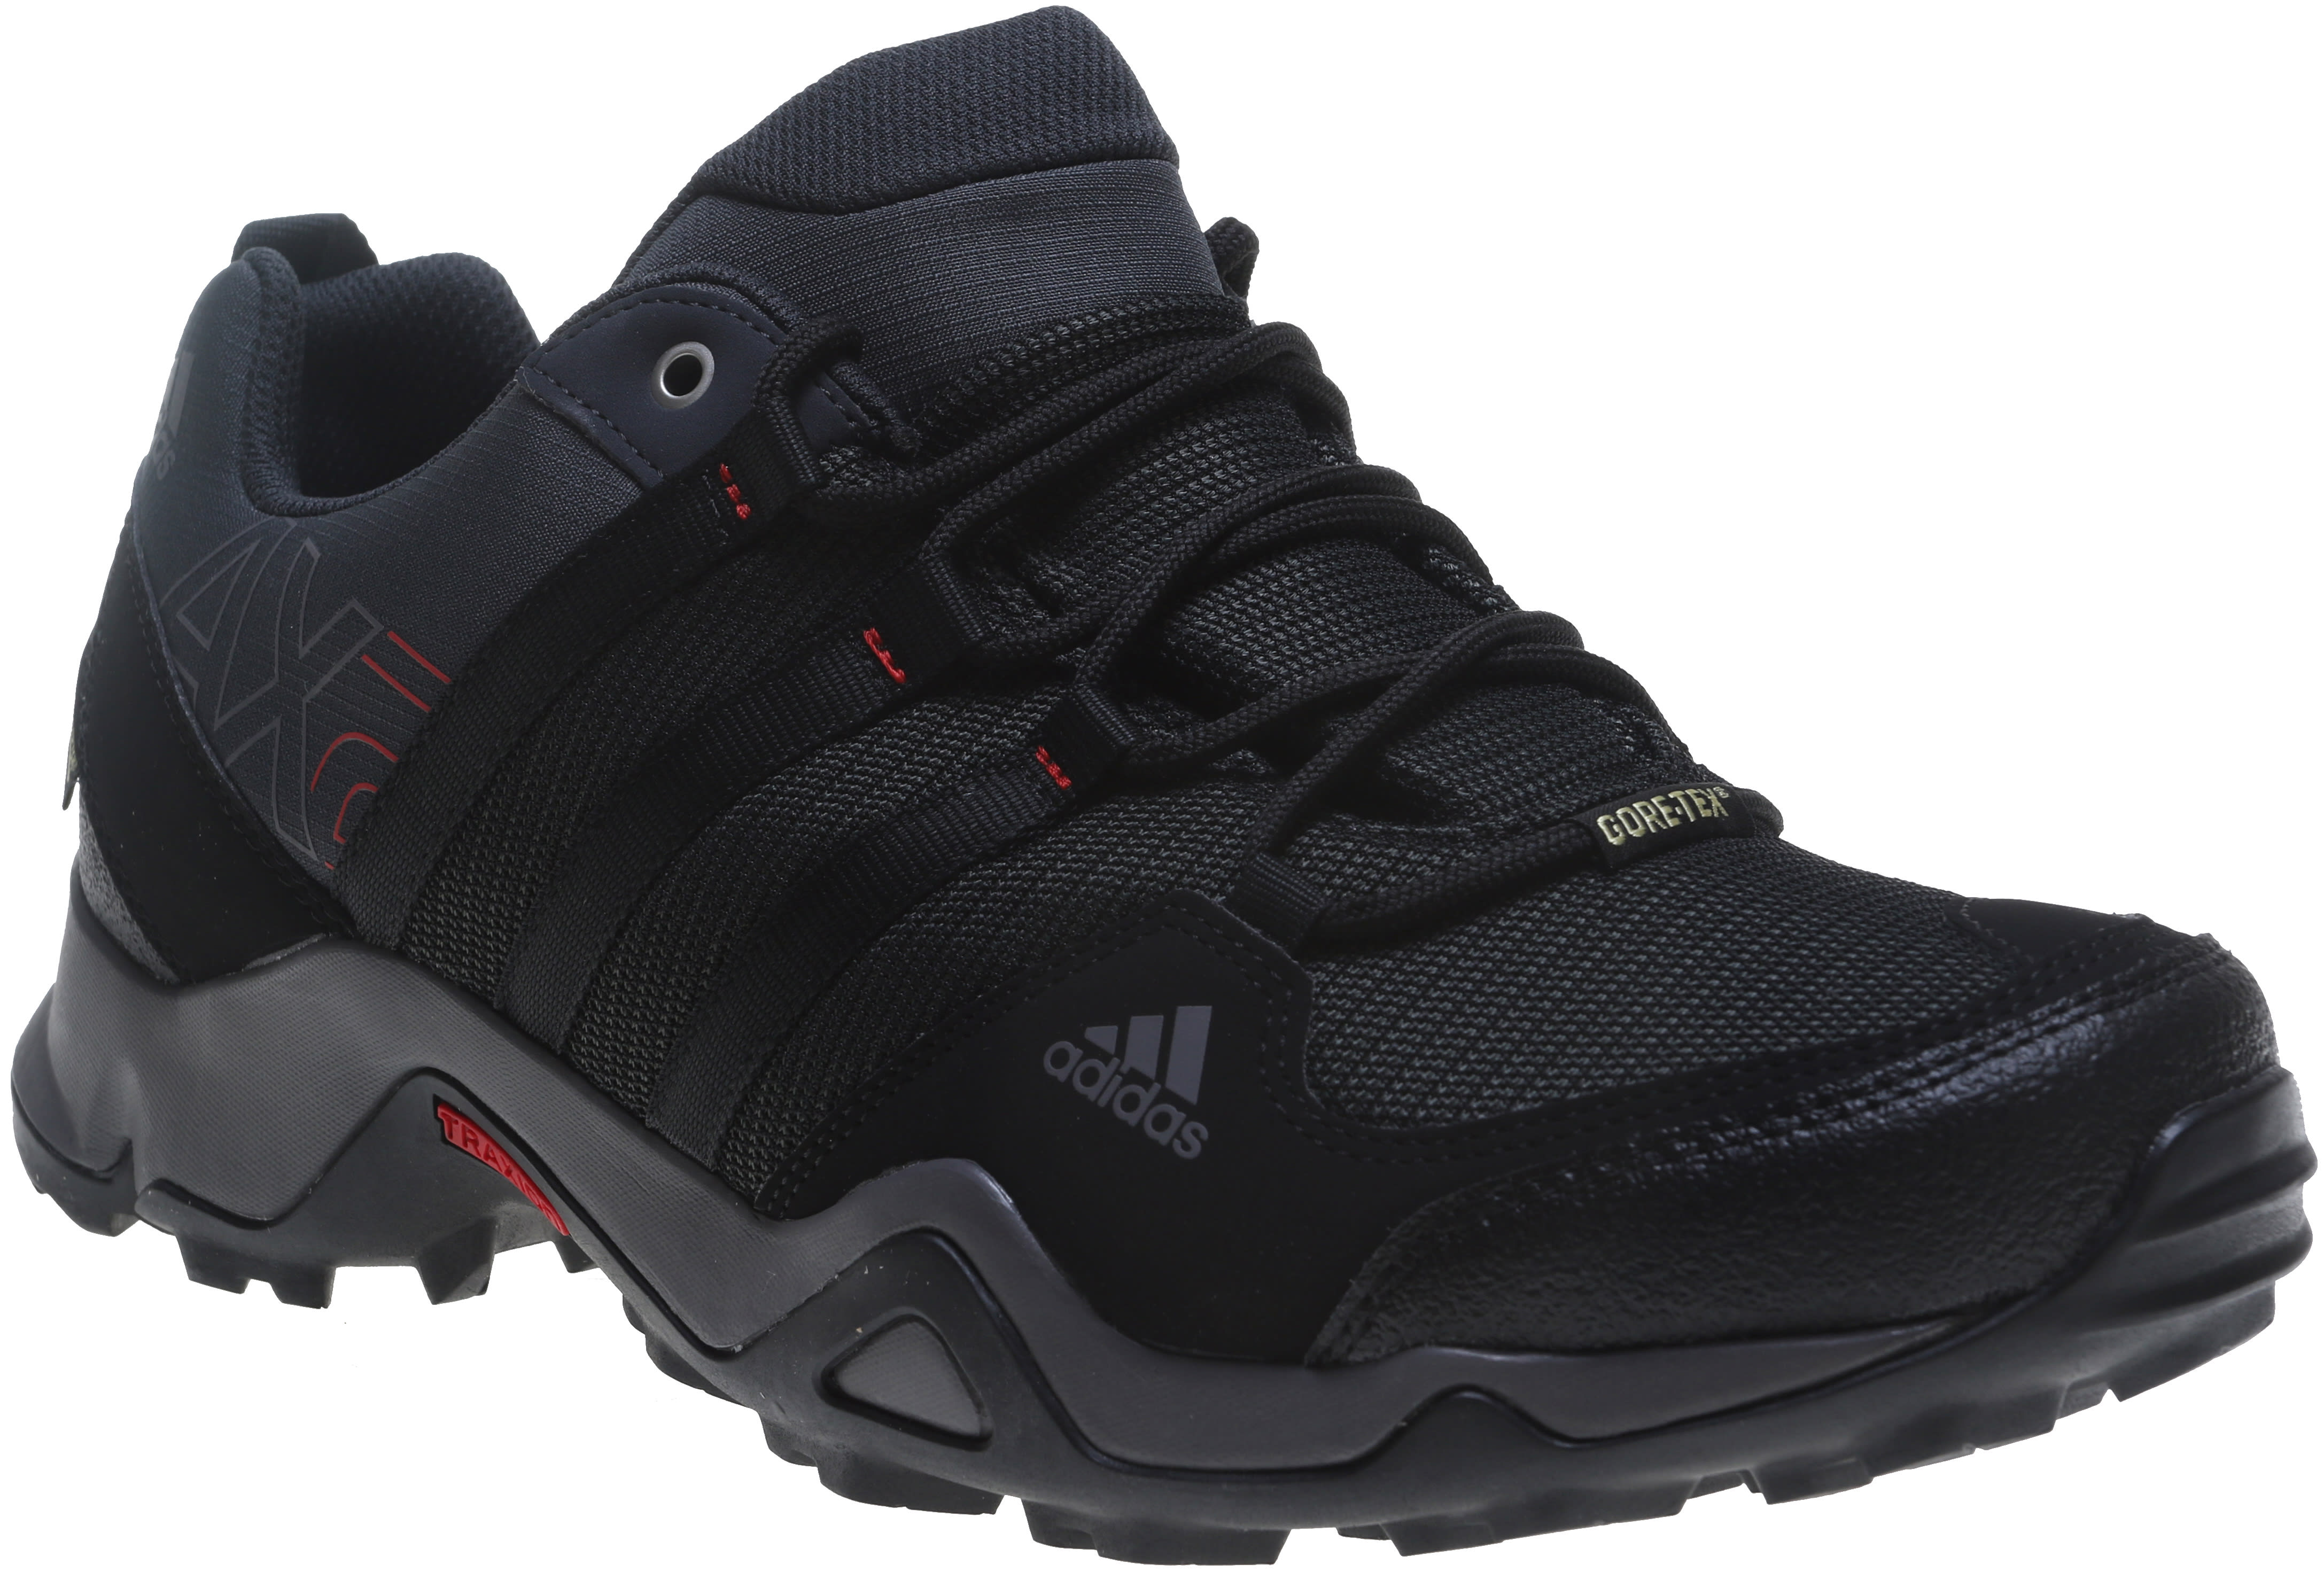 innovative design 9d810 0ce94 ... promo code for gore shoes tex hiking adidas ax2 cqw8z0z 23710 607d0